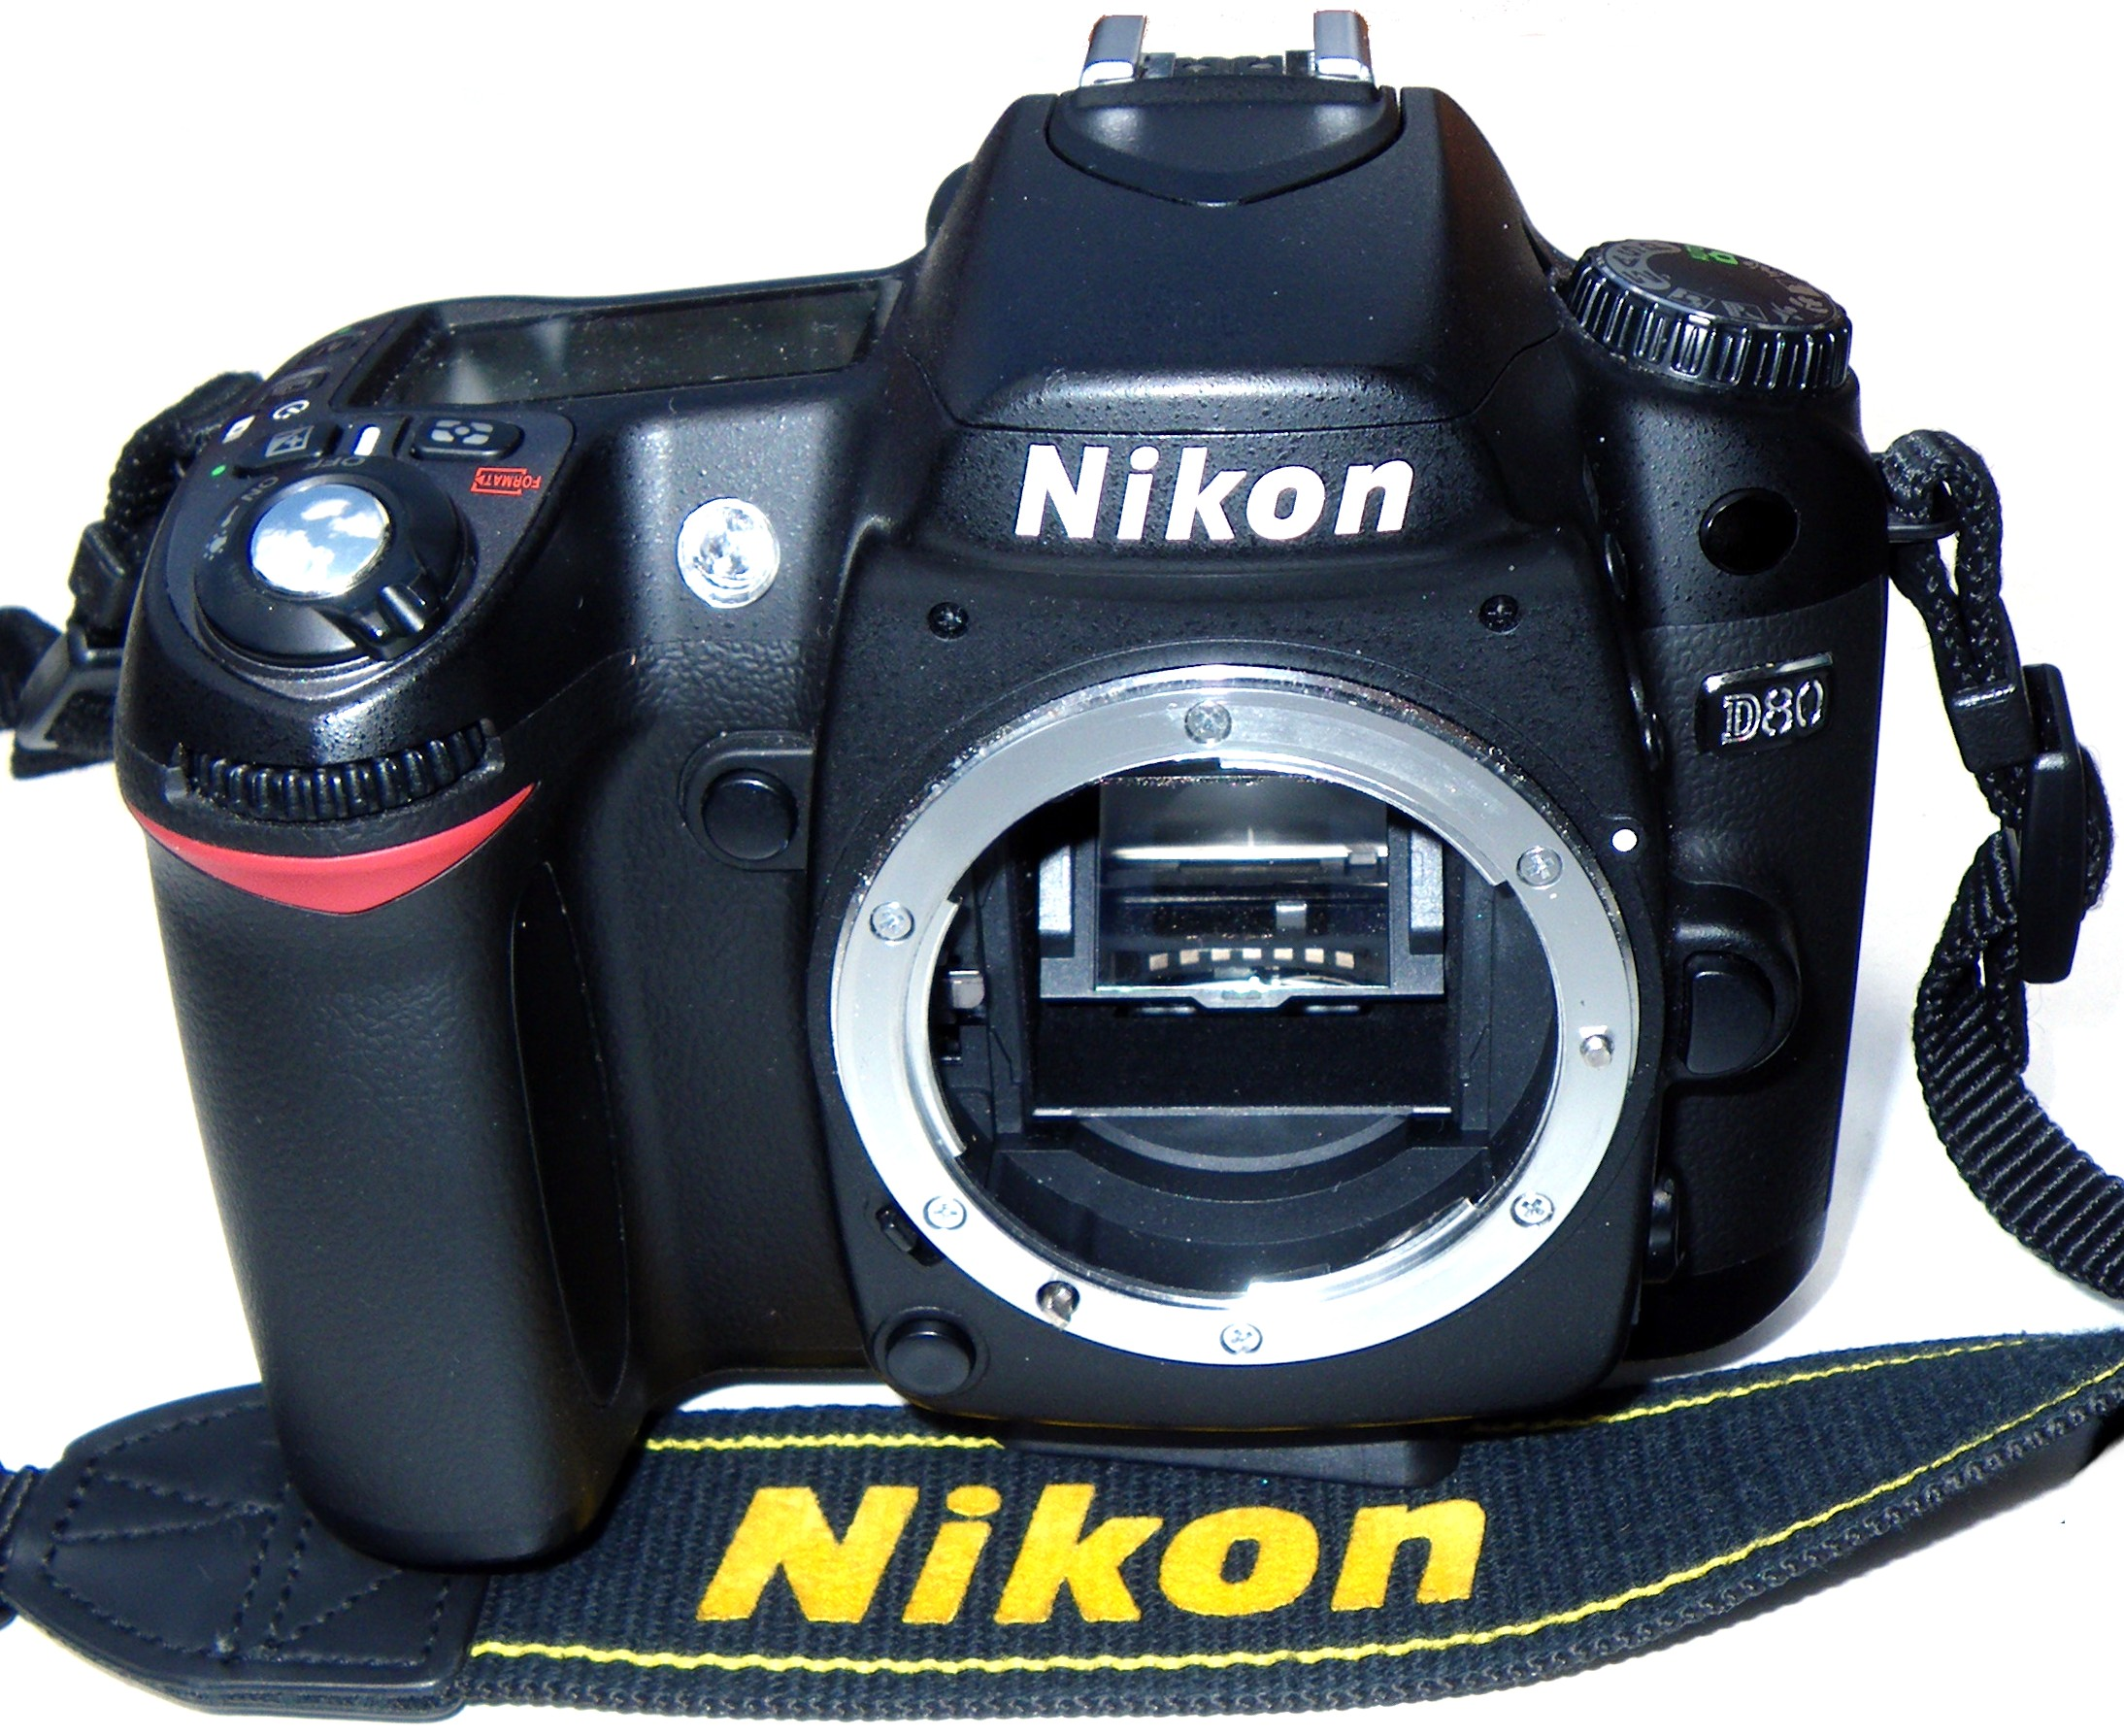 File:Nikon D80 Body.JPG - Wikimedia Commons